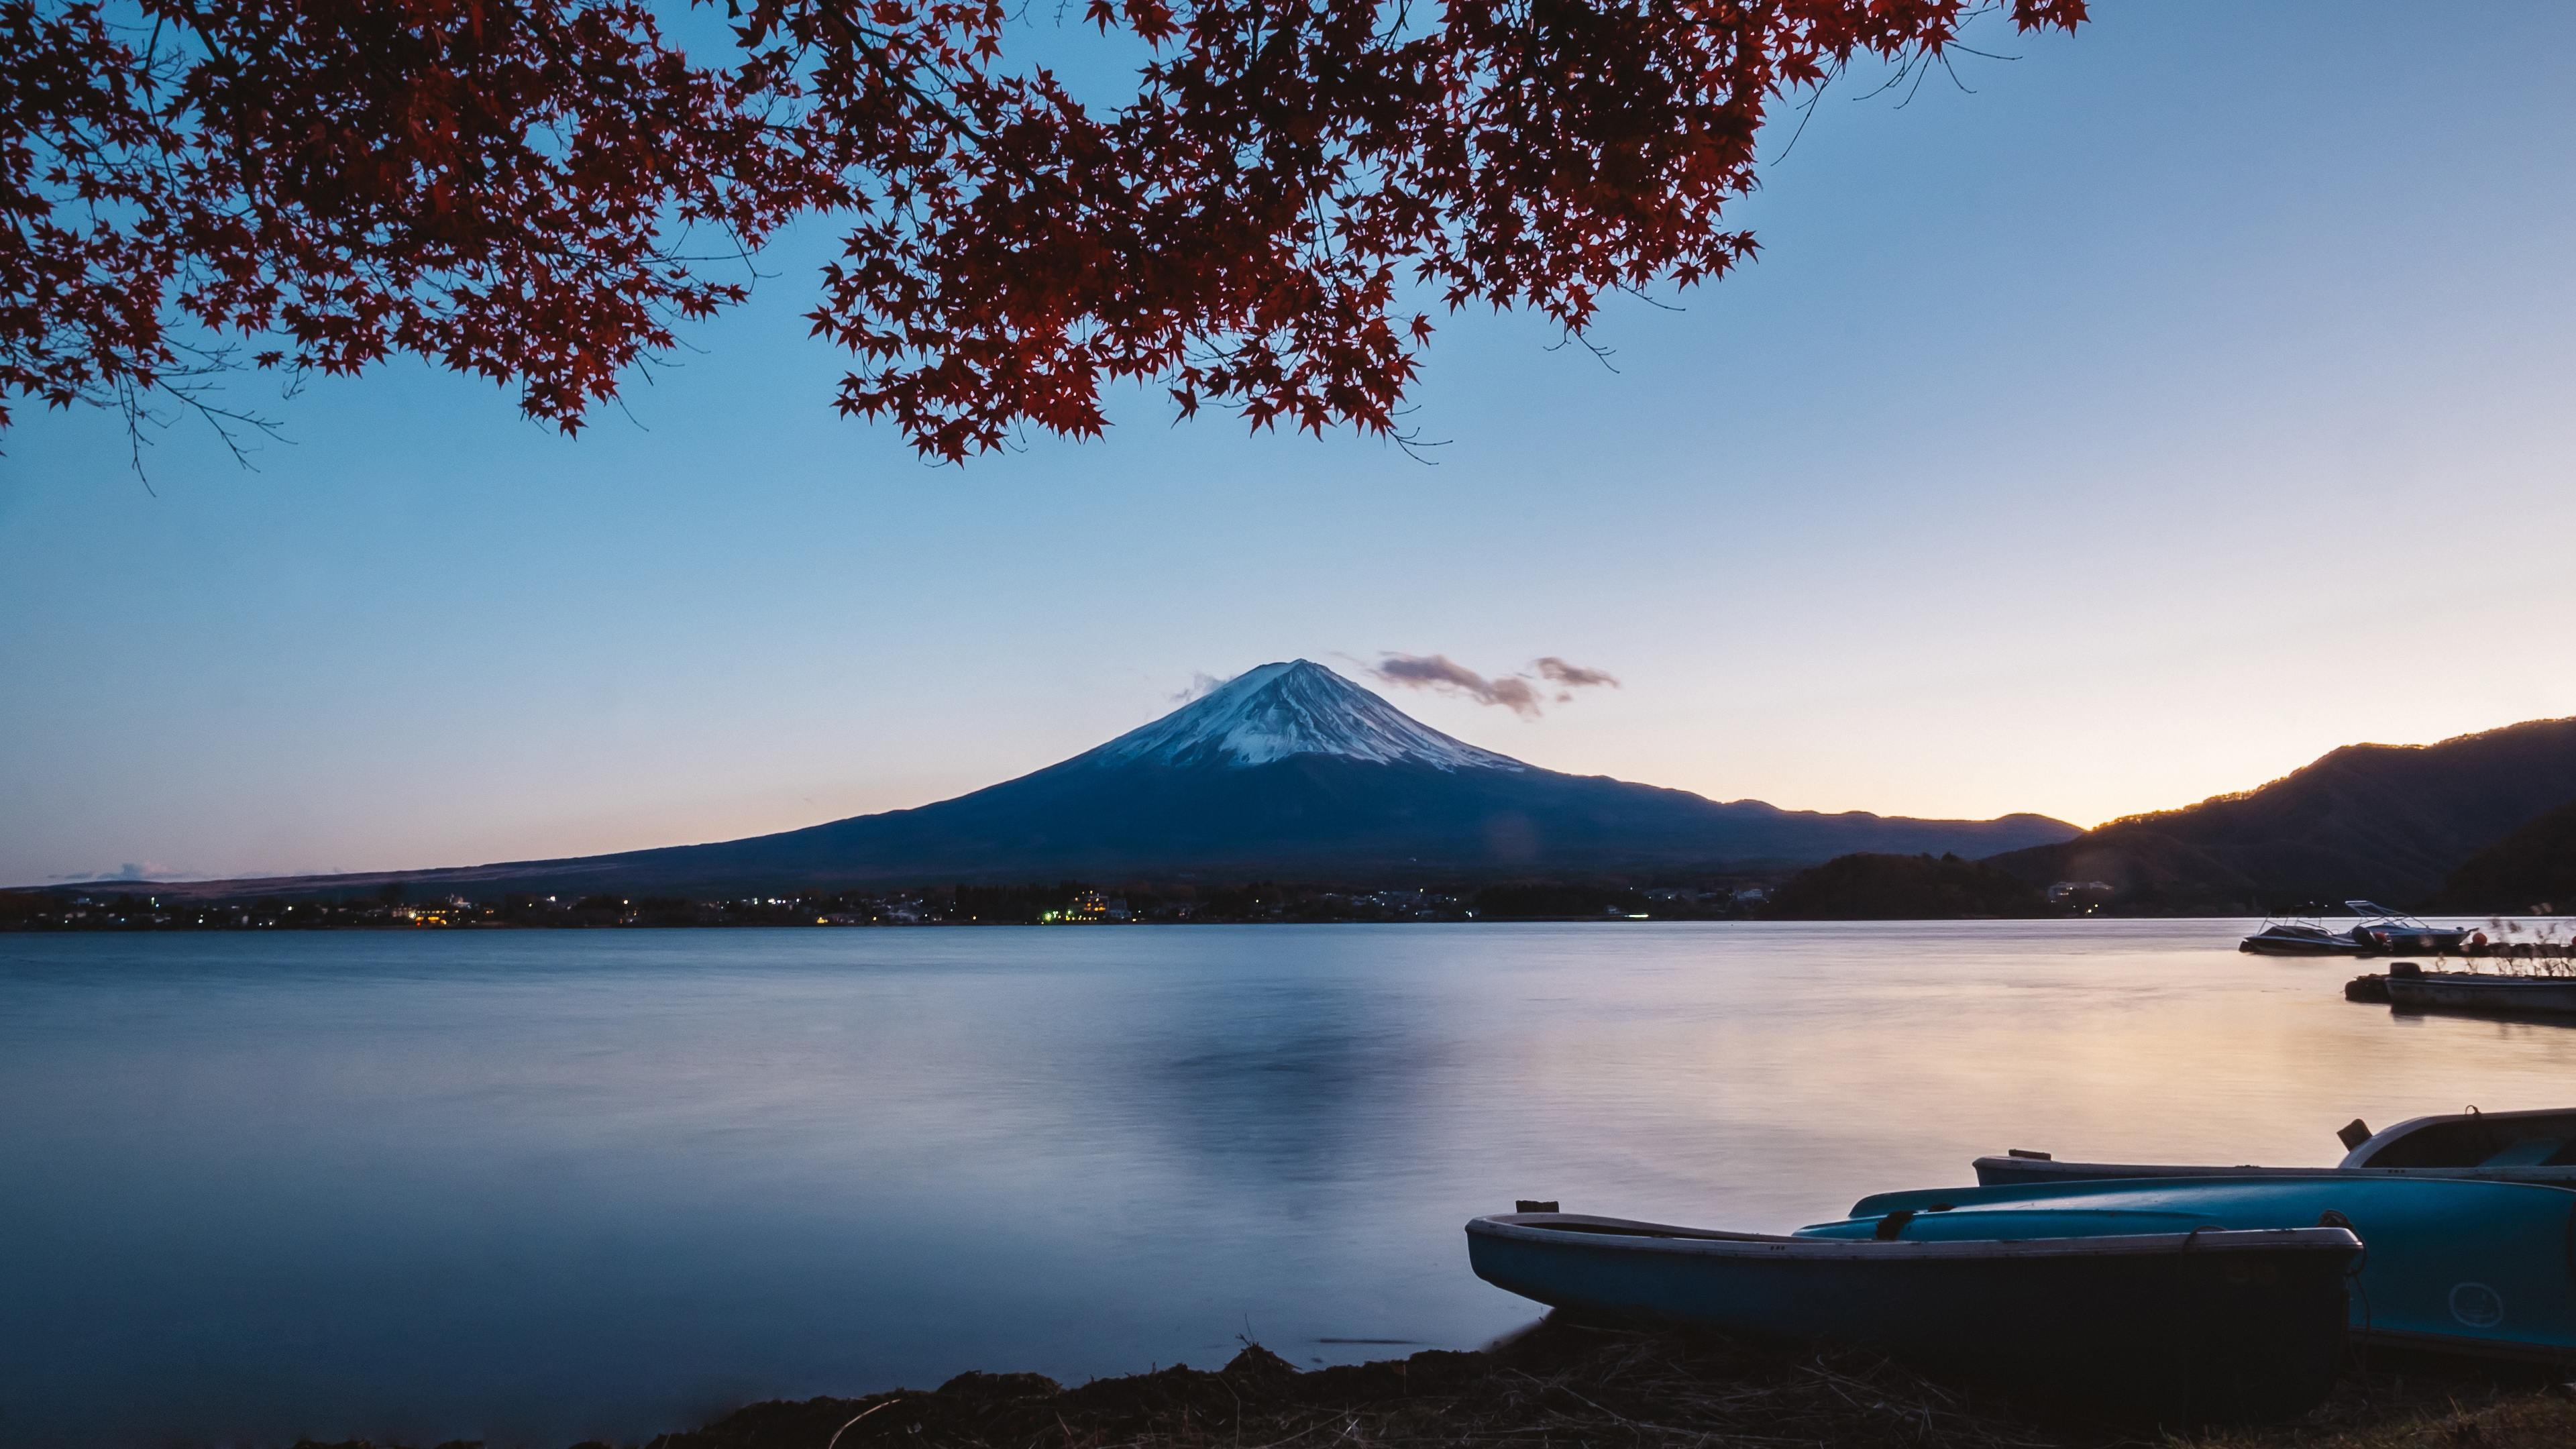 5k mount fuji 1540141563 - 5k Mount Fuji - nature wallpapers, mountains wallpapers, mount fuji wallpapers, hd-wallpapers, 5k wallpapers, 4k-wallpapers